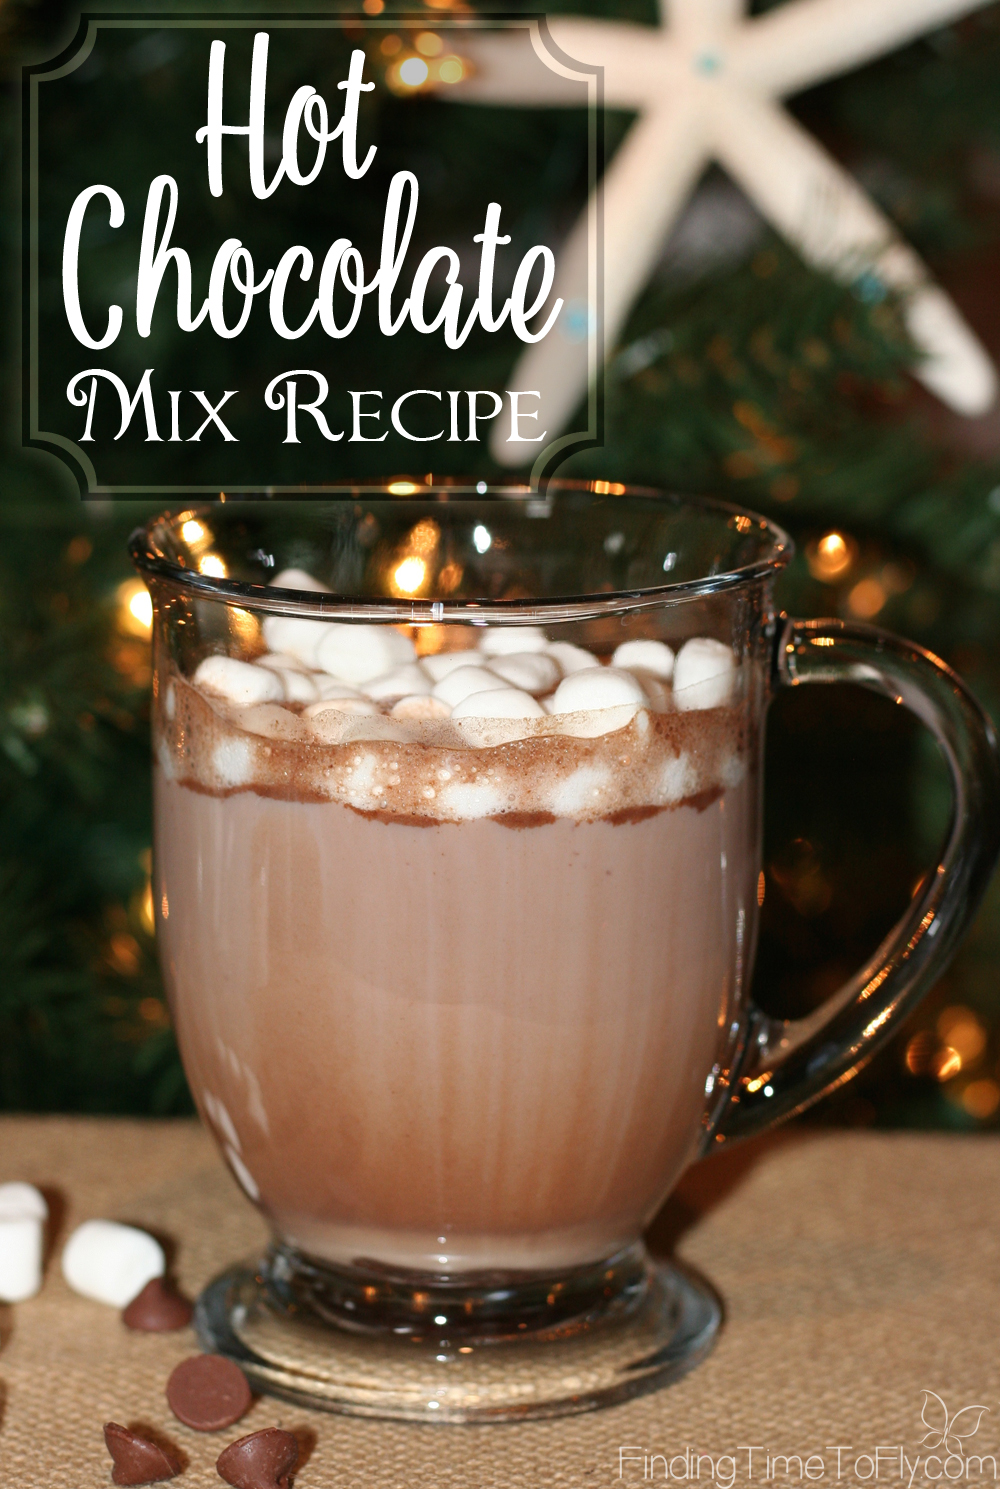 This homemade Hot Chocolate Mix Recipe uses ground chocolate and white chocolate chips. I'm making my own bulk hot chocolate mix this year!